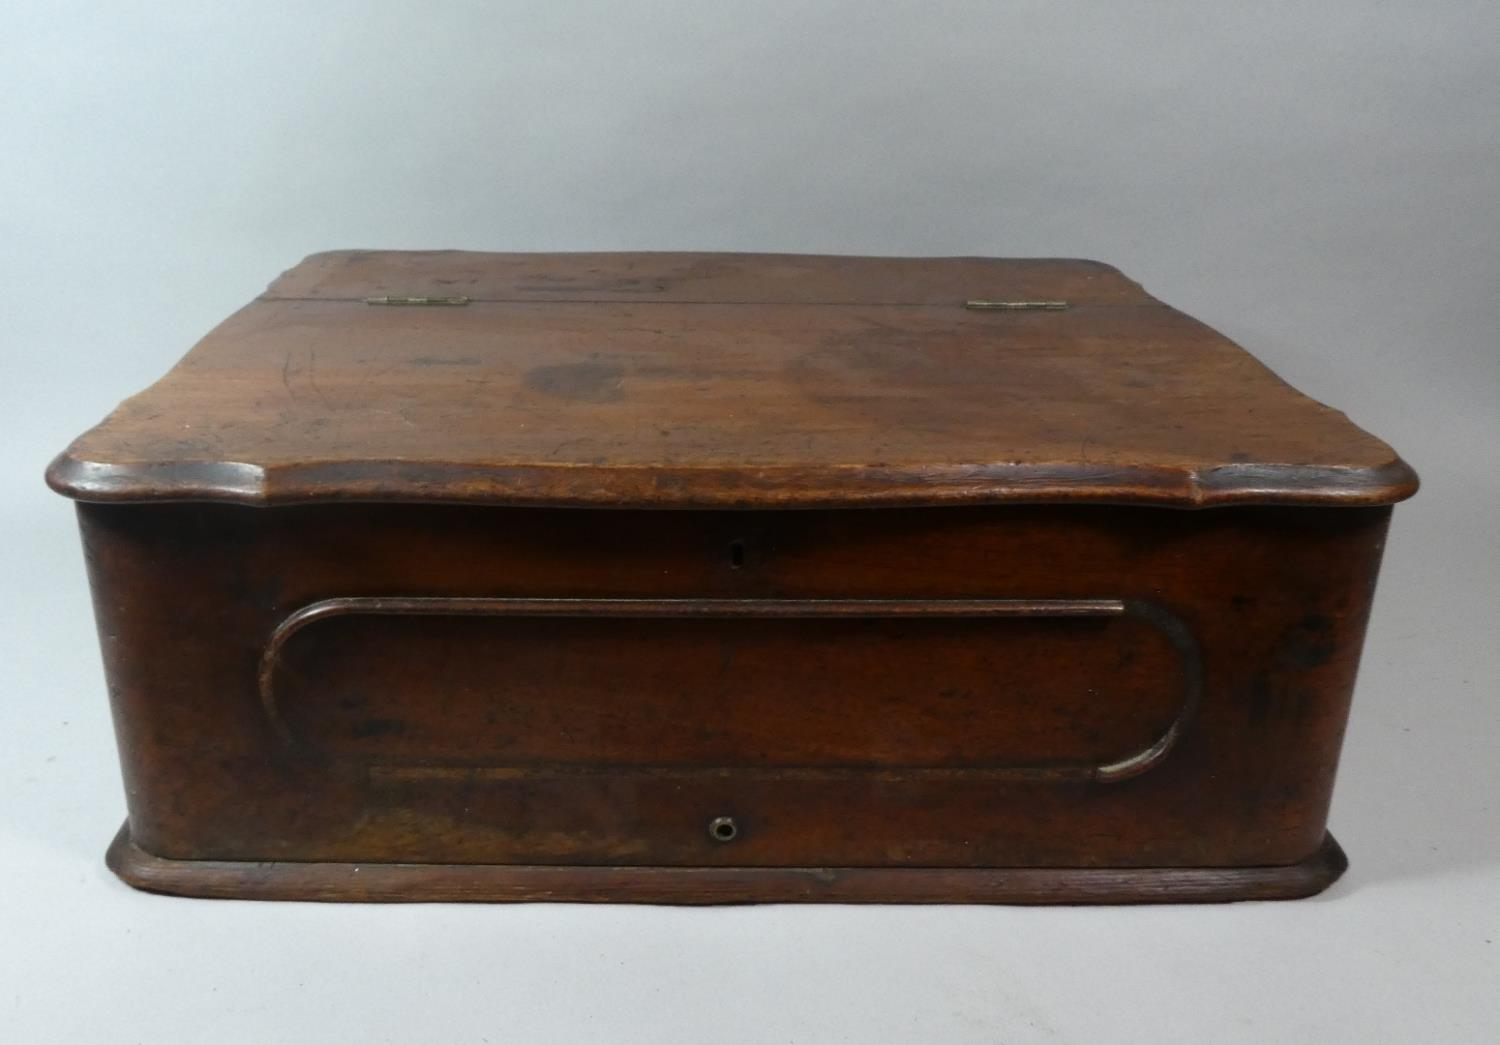 Lot 273 - A Late Victorian Mahogany Box with Hinged Lid, 56cm WIde